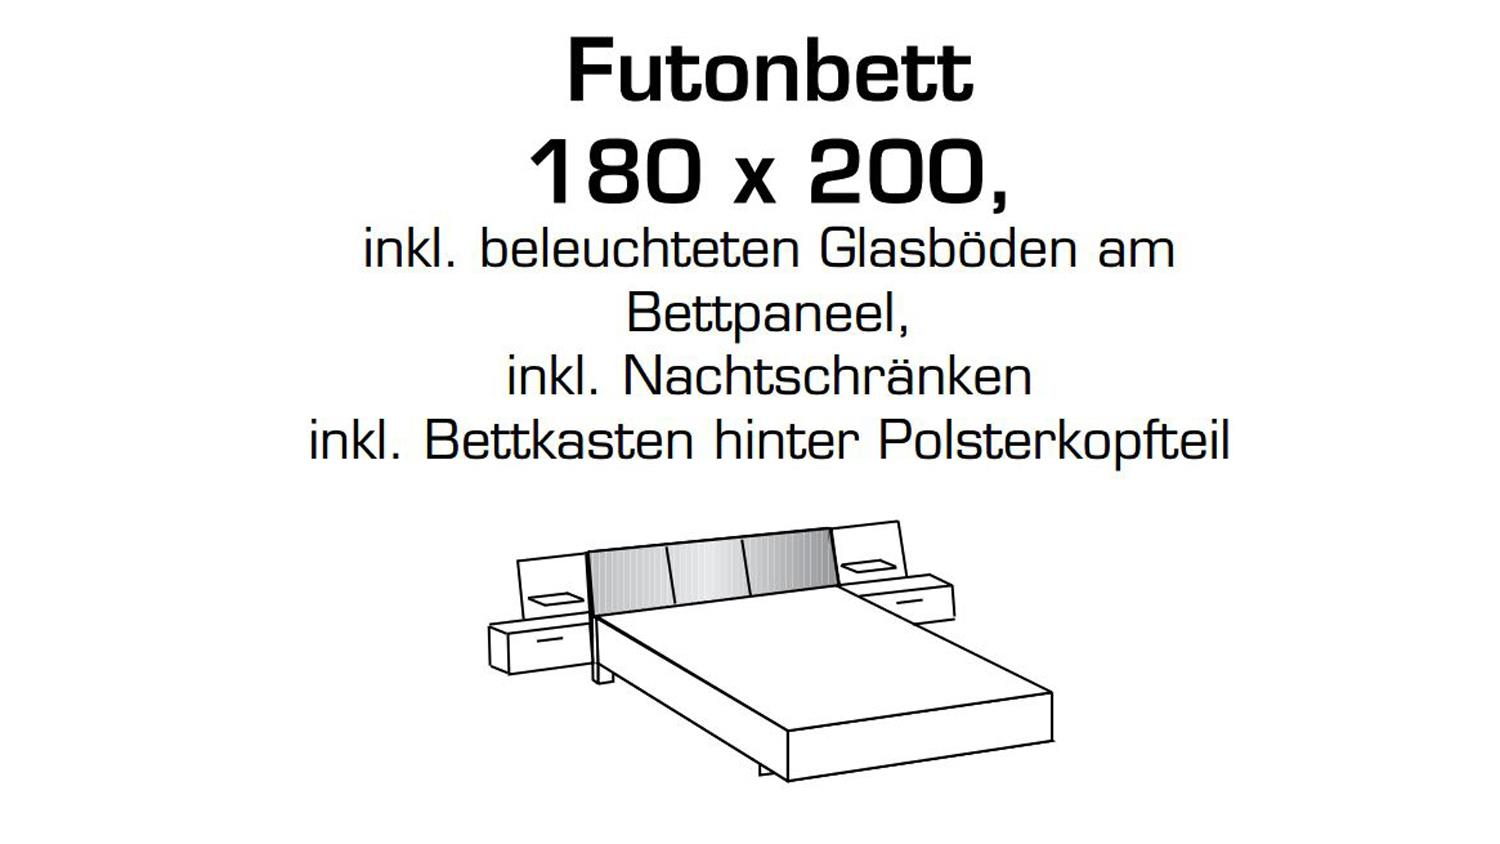 futonbett virgo bett 180x200 schlammeiche inkl led und bettkasten. Black Bedroom Furniture Sets. Home Design Ideas